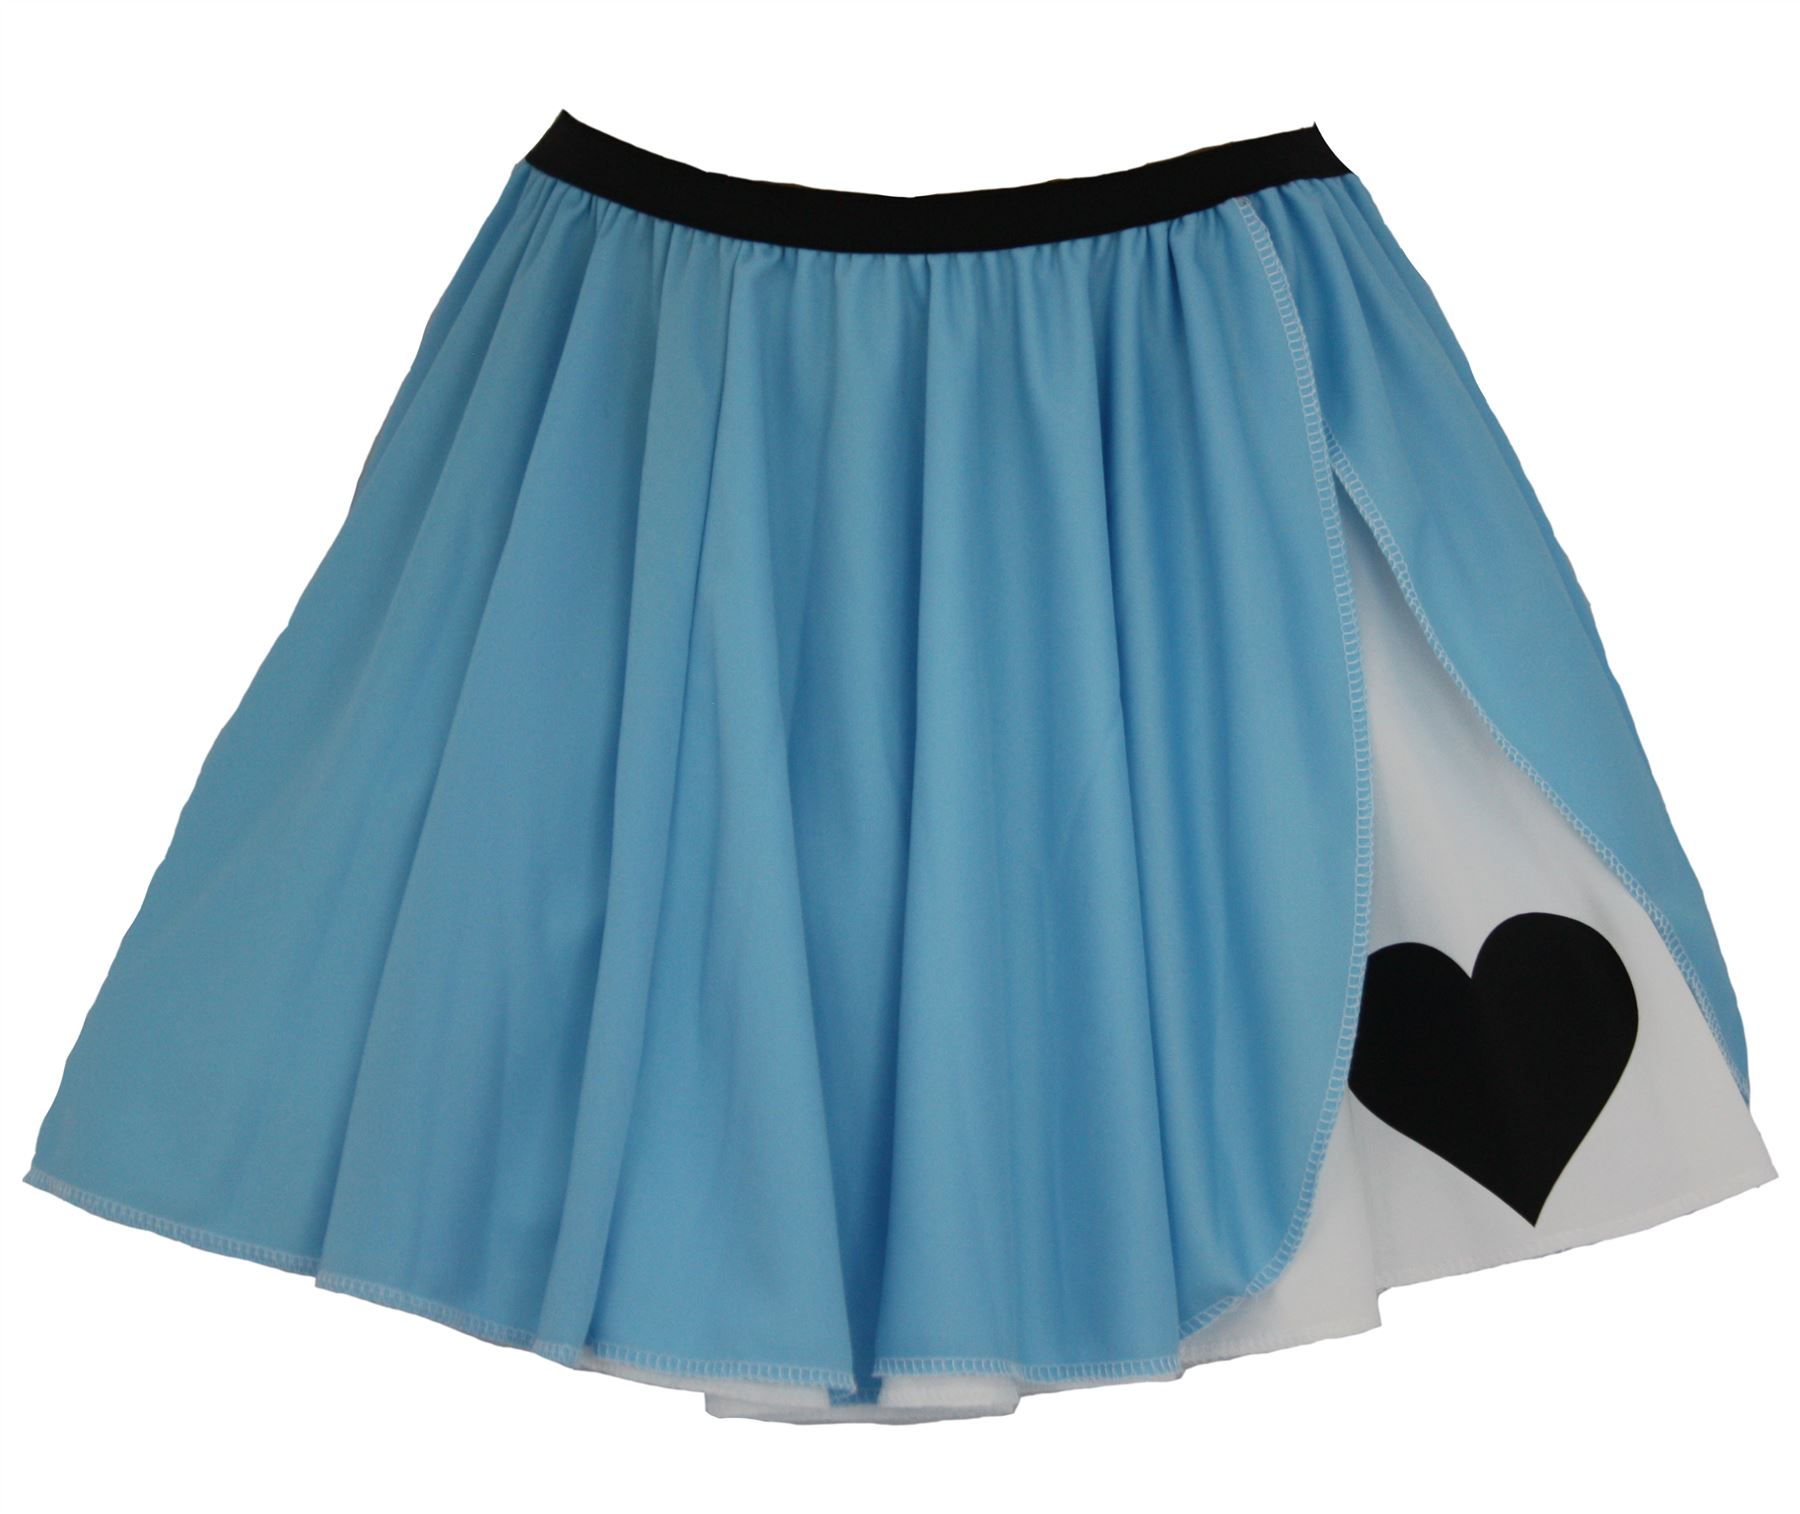 059a7ccf1d Ladies Blue   White Alice in Wonderland Panel Skater Skirt Fancy Dress